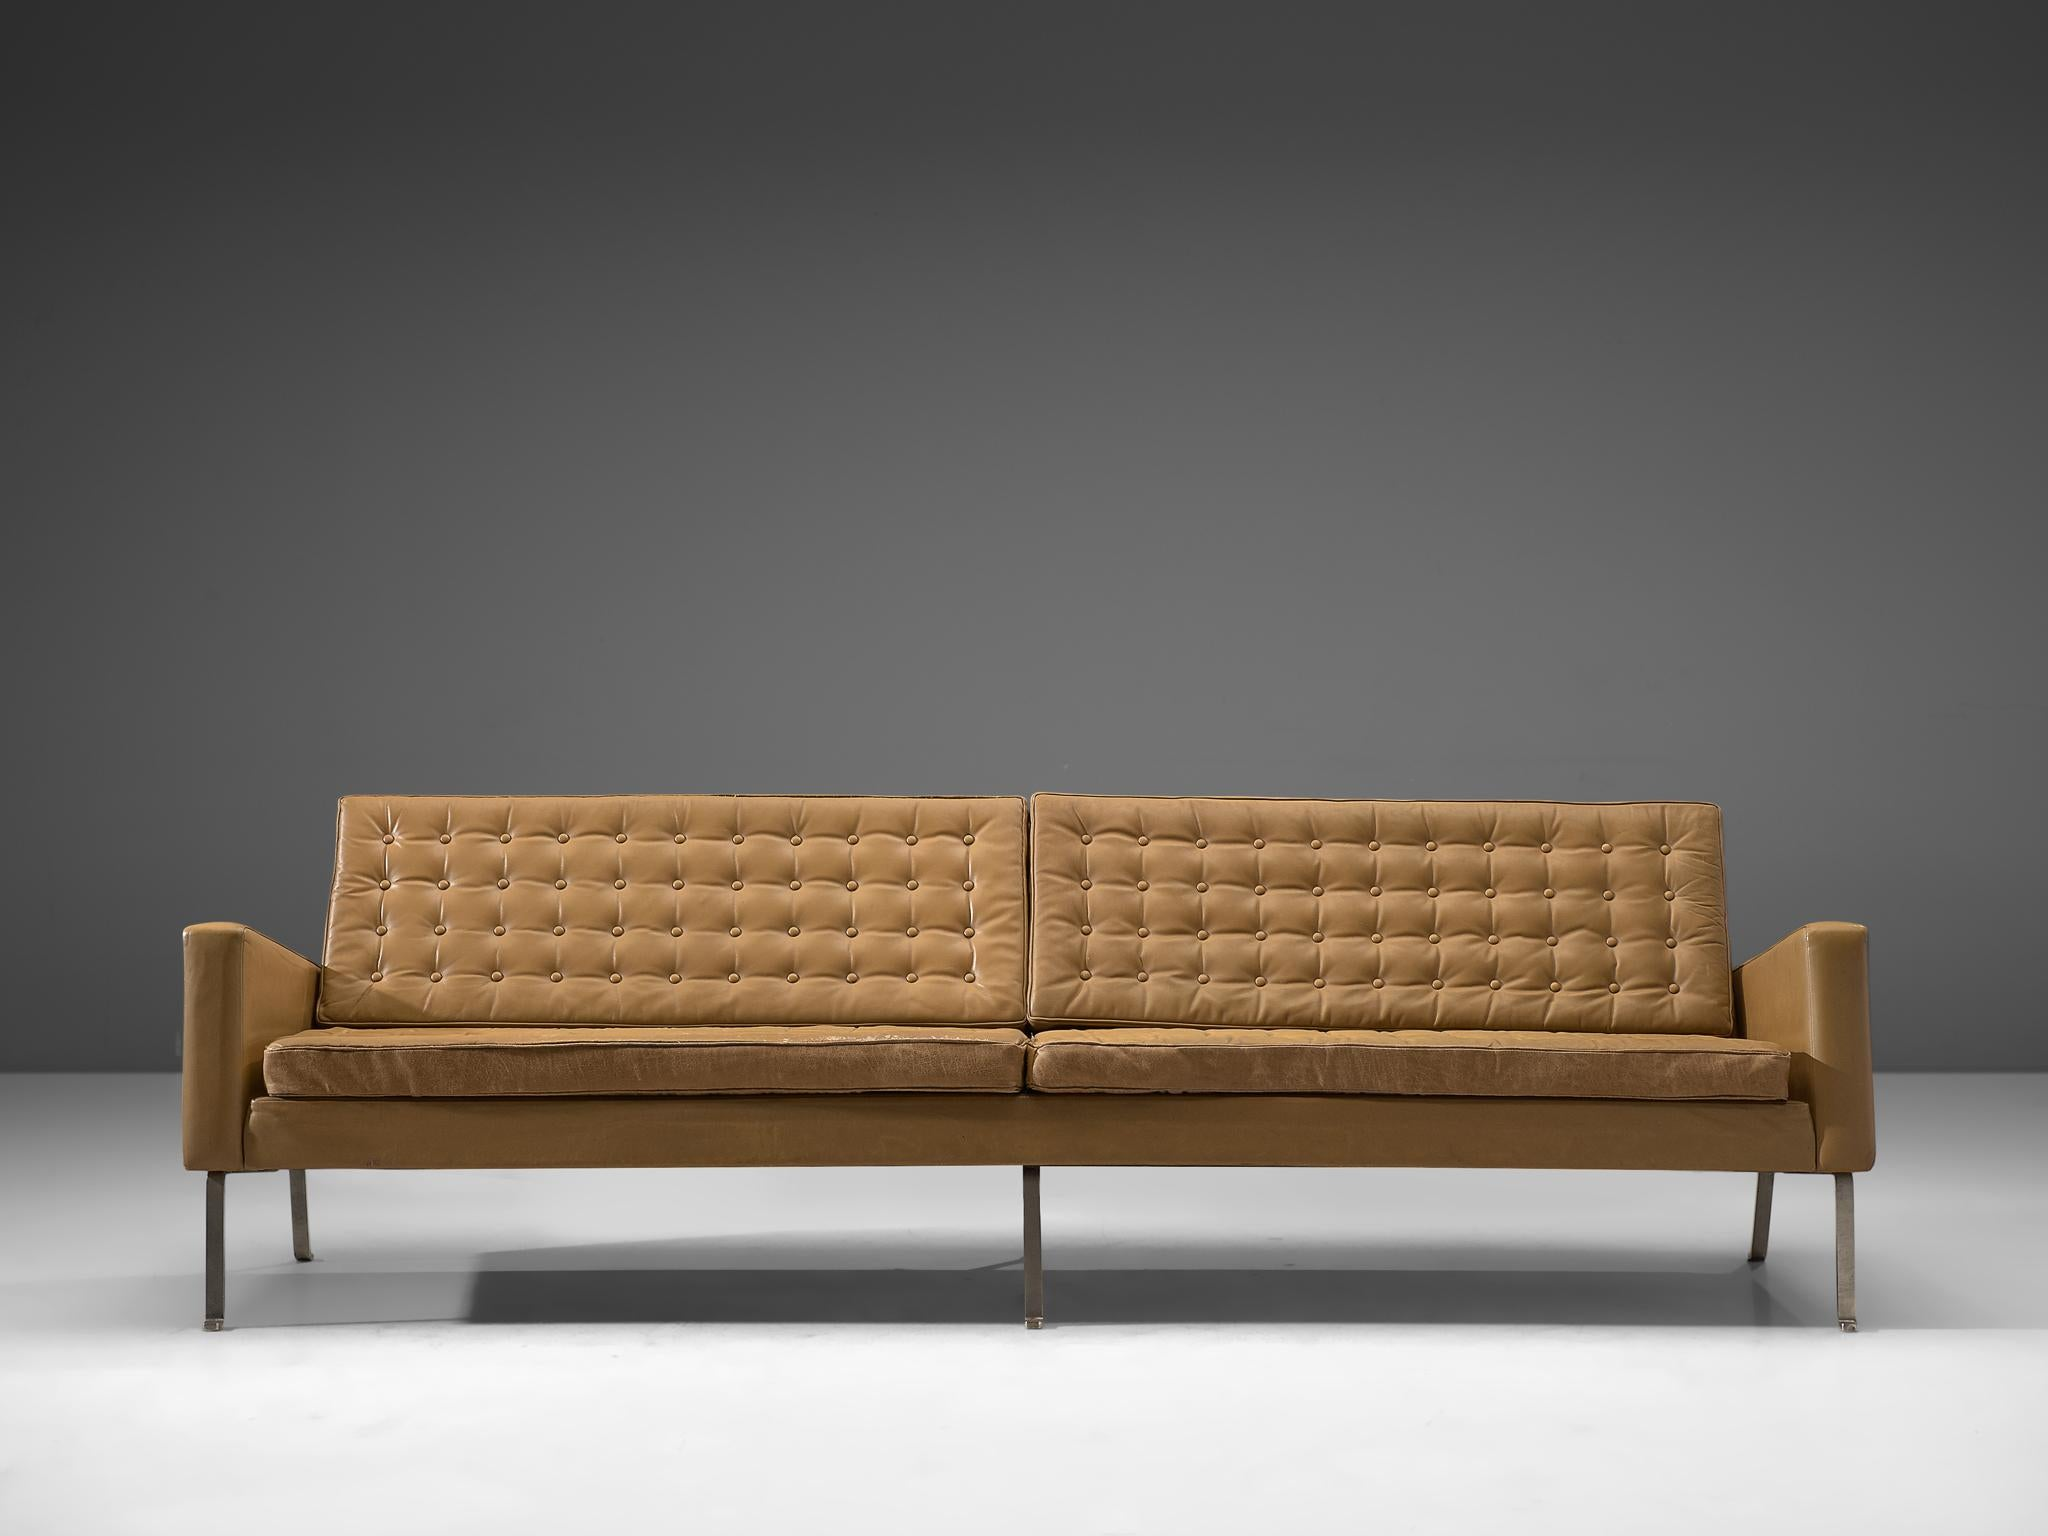 Stupendous Roland Rainer Large 4 Seat Sofa In Leather For Wilkhahn Germany 1960S Alphanode Cool Chair Designs And Ideas Alphanodeonline